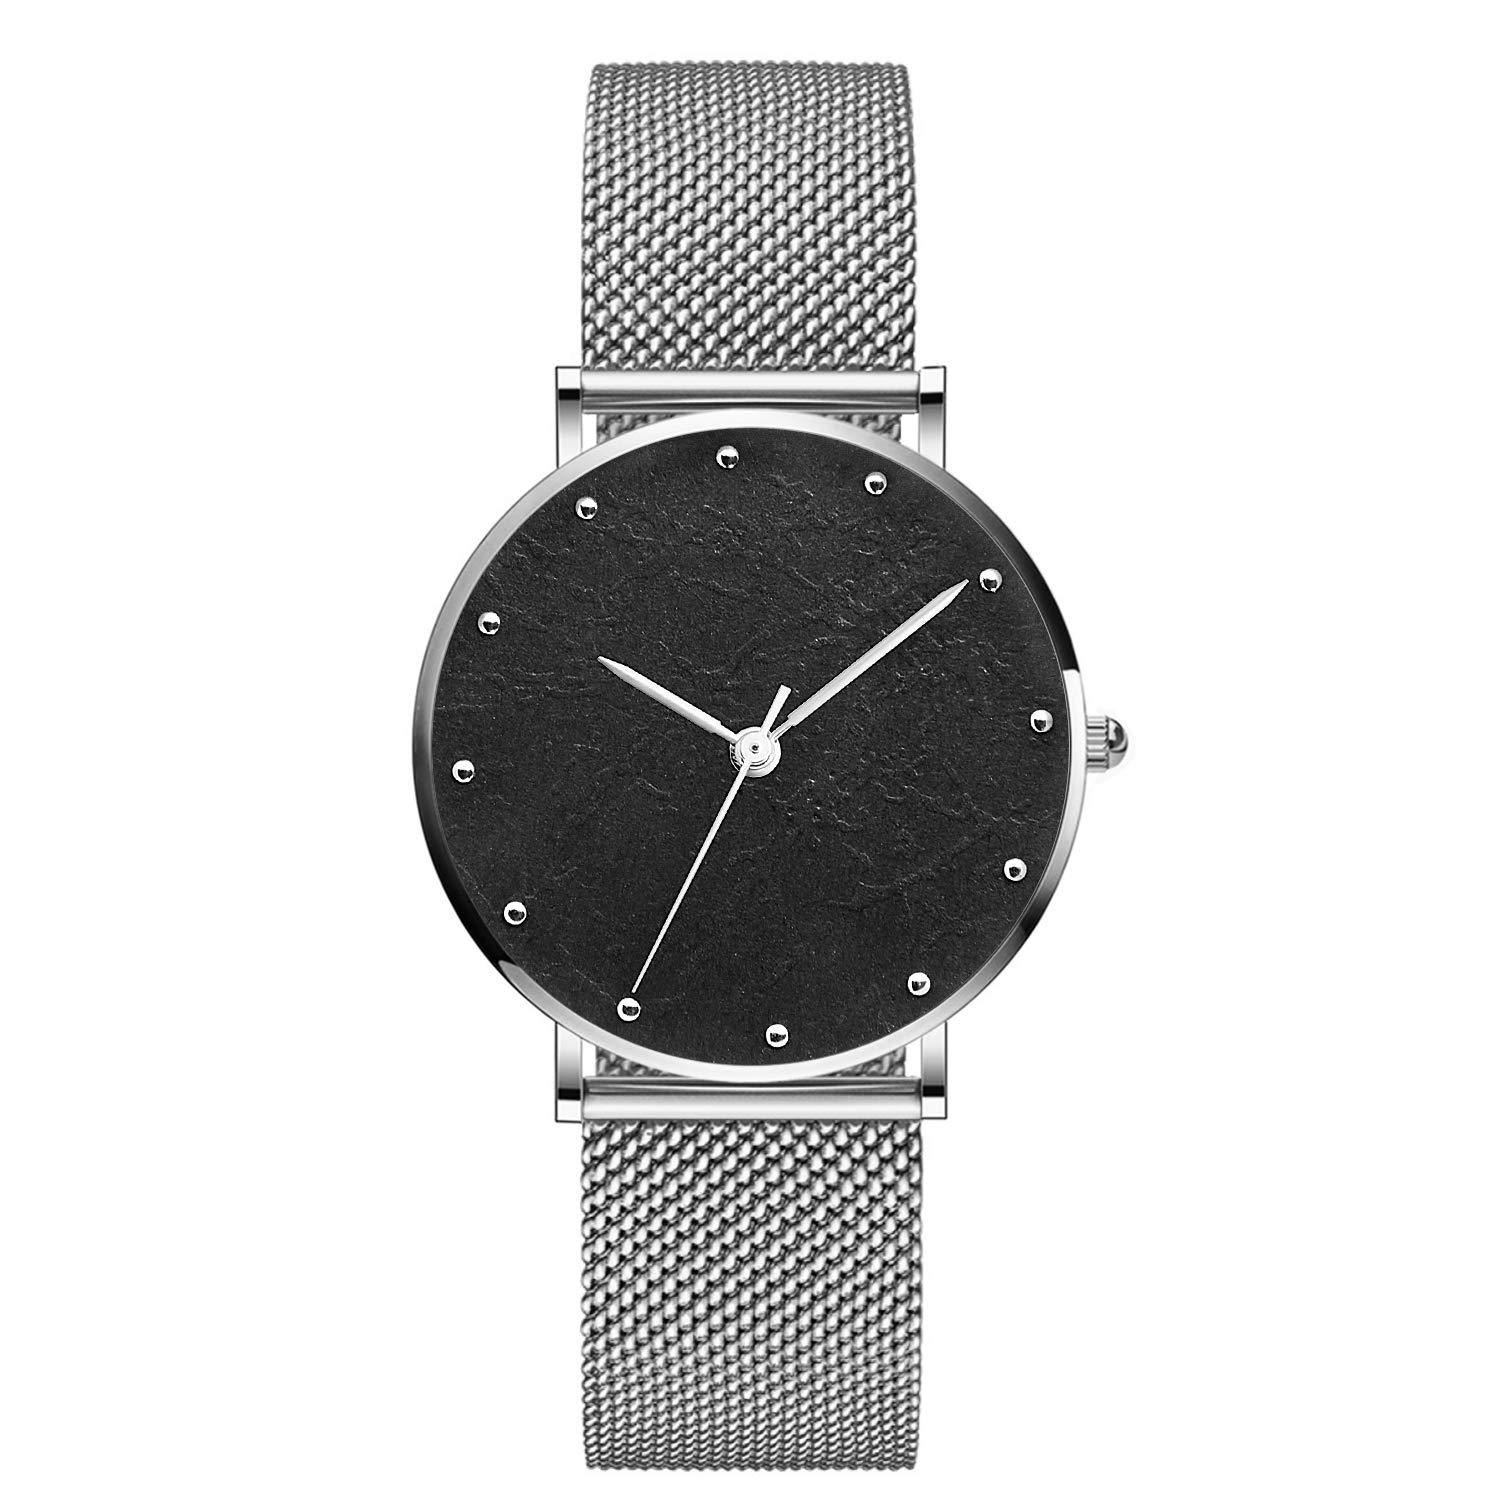 LUXMO PREMIUM Classic Women s Rose Gold Watch Stainless Steel Mesh Bracelet Casual Fashion Wrist Watches 32MM Women s Analog Minimalist Watch 30M Waterproof Ladies Art Dress Wristwatches